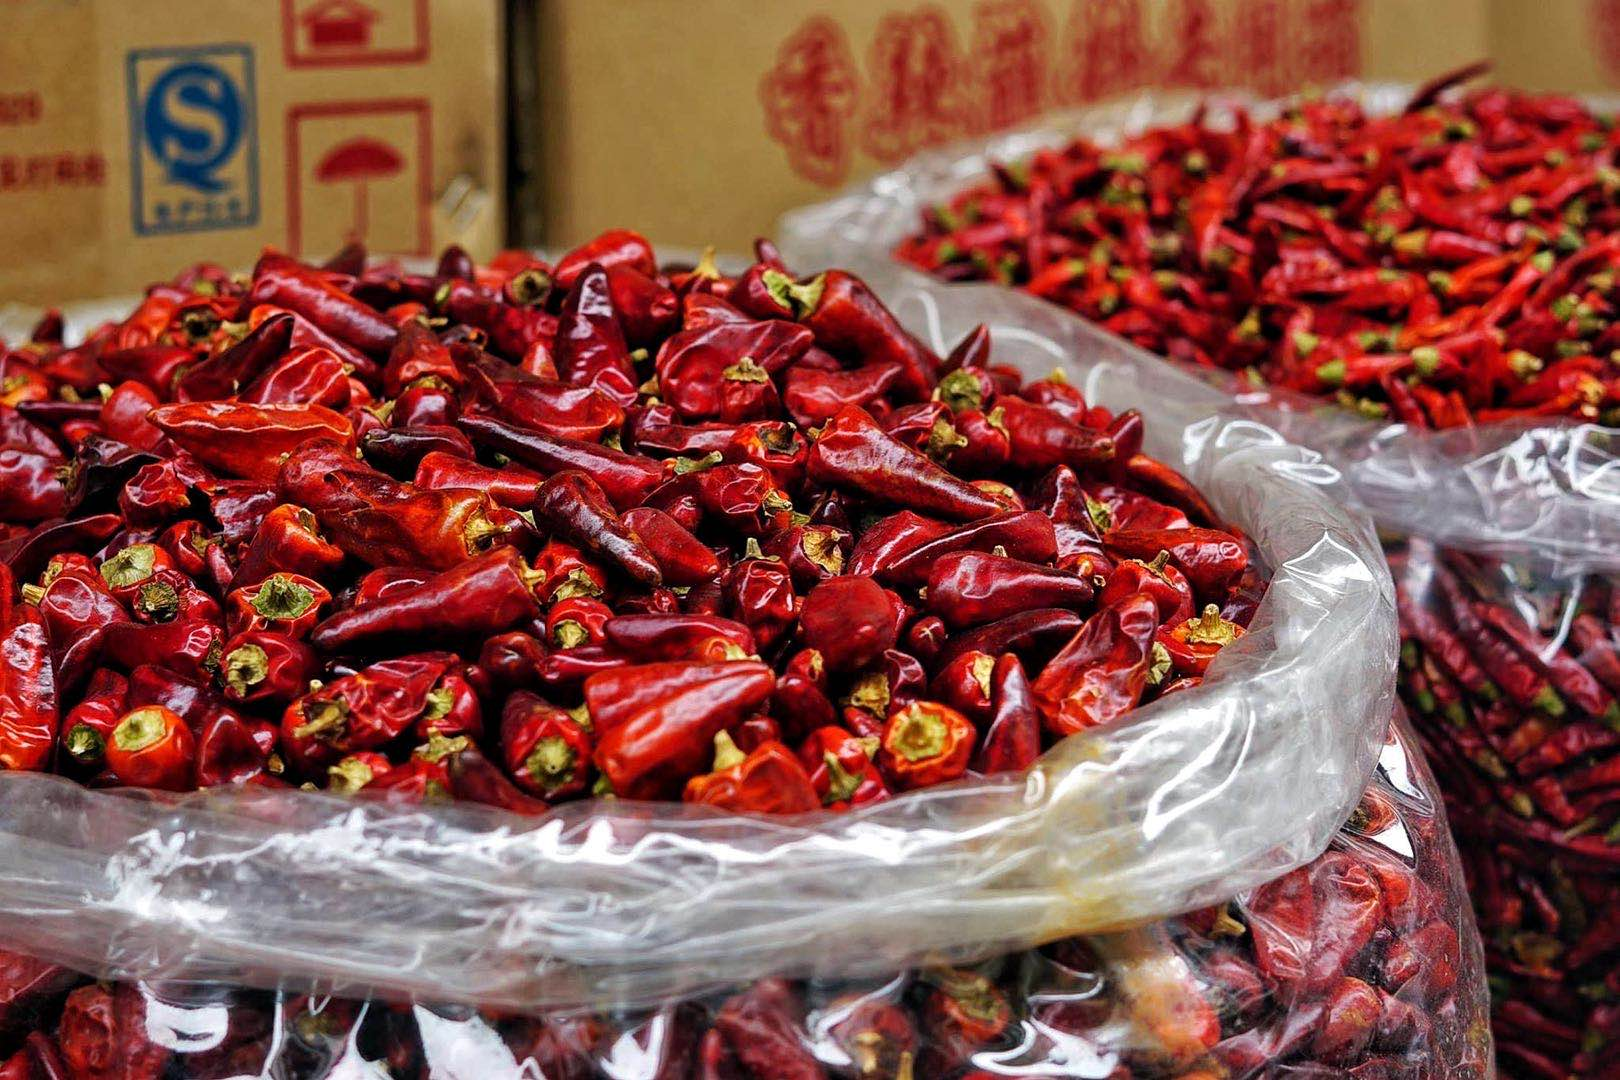 5 Sichuan Dishes That Won't Burn Your Face Off